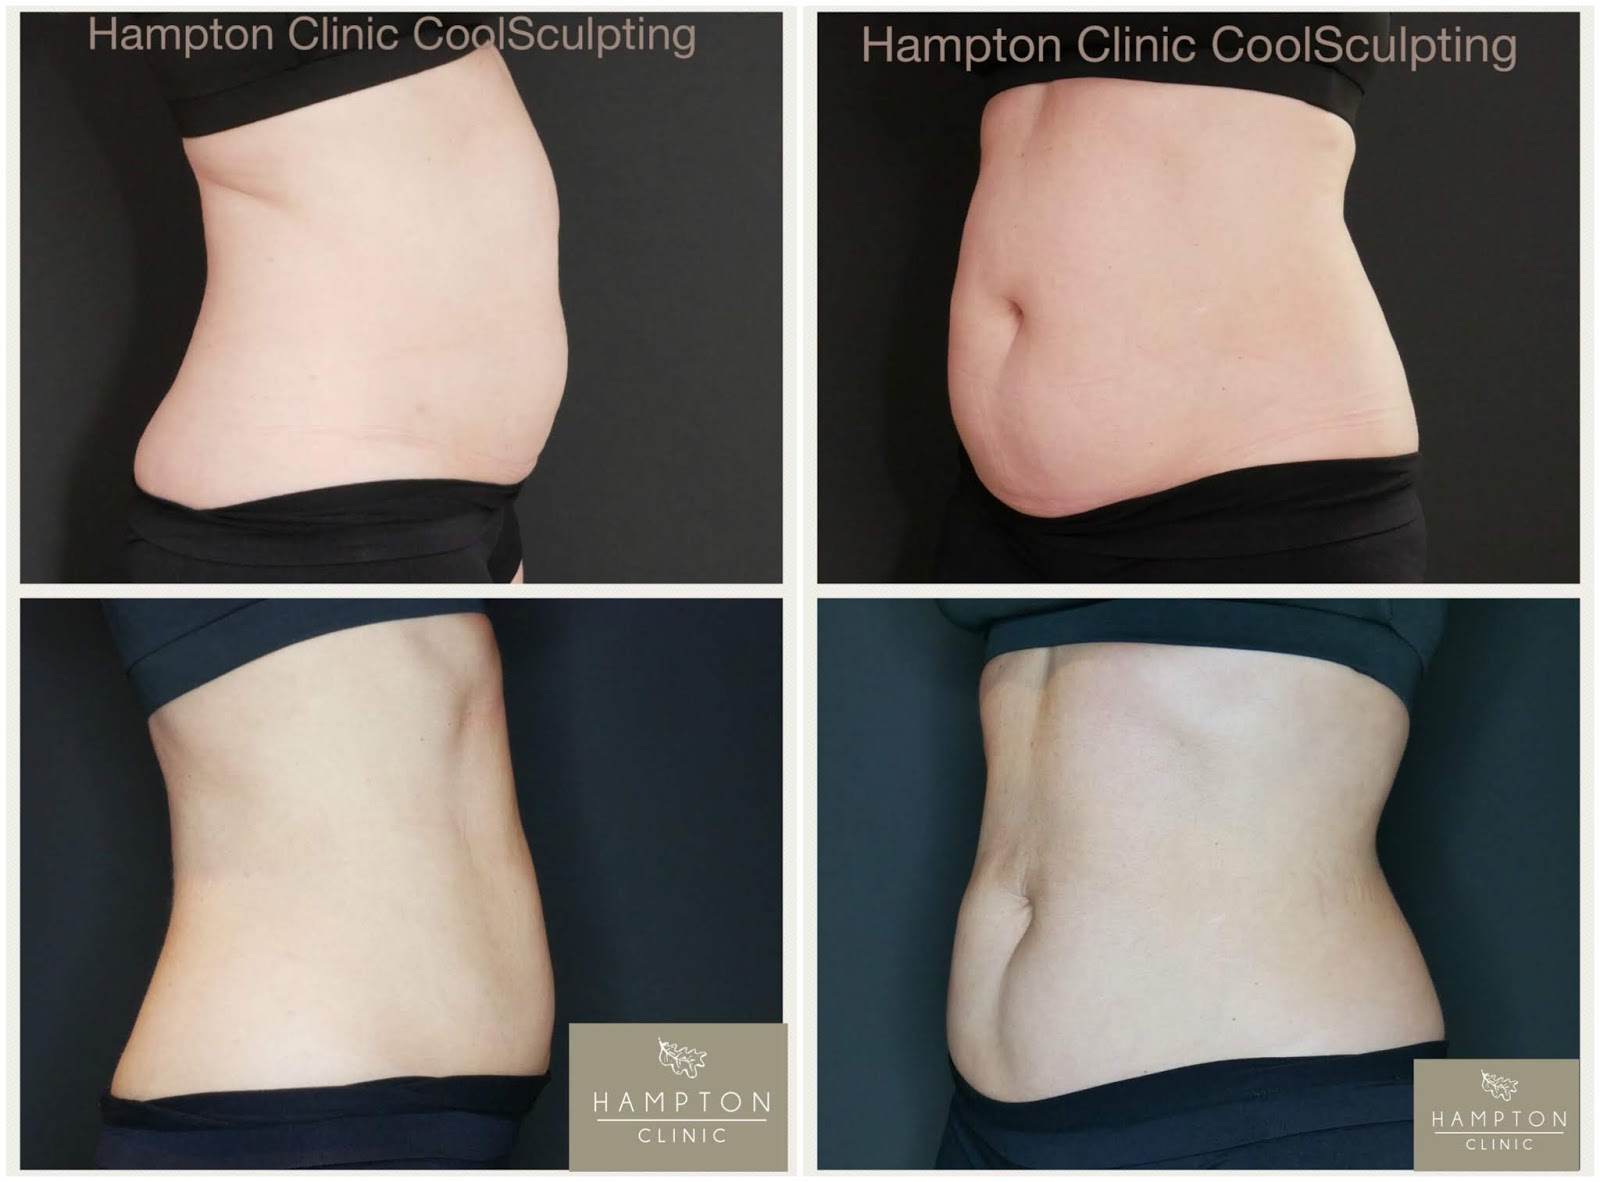 Coolsculpting treatment \ before and after photos